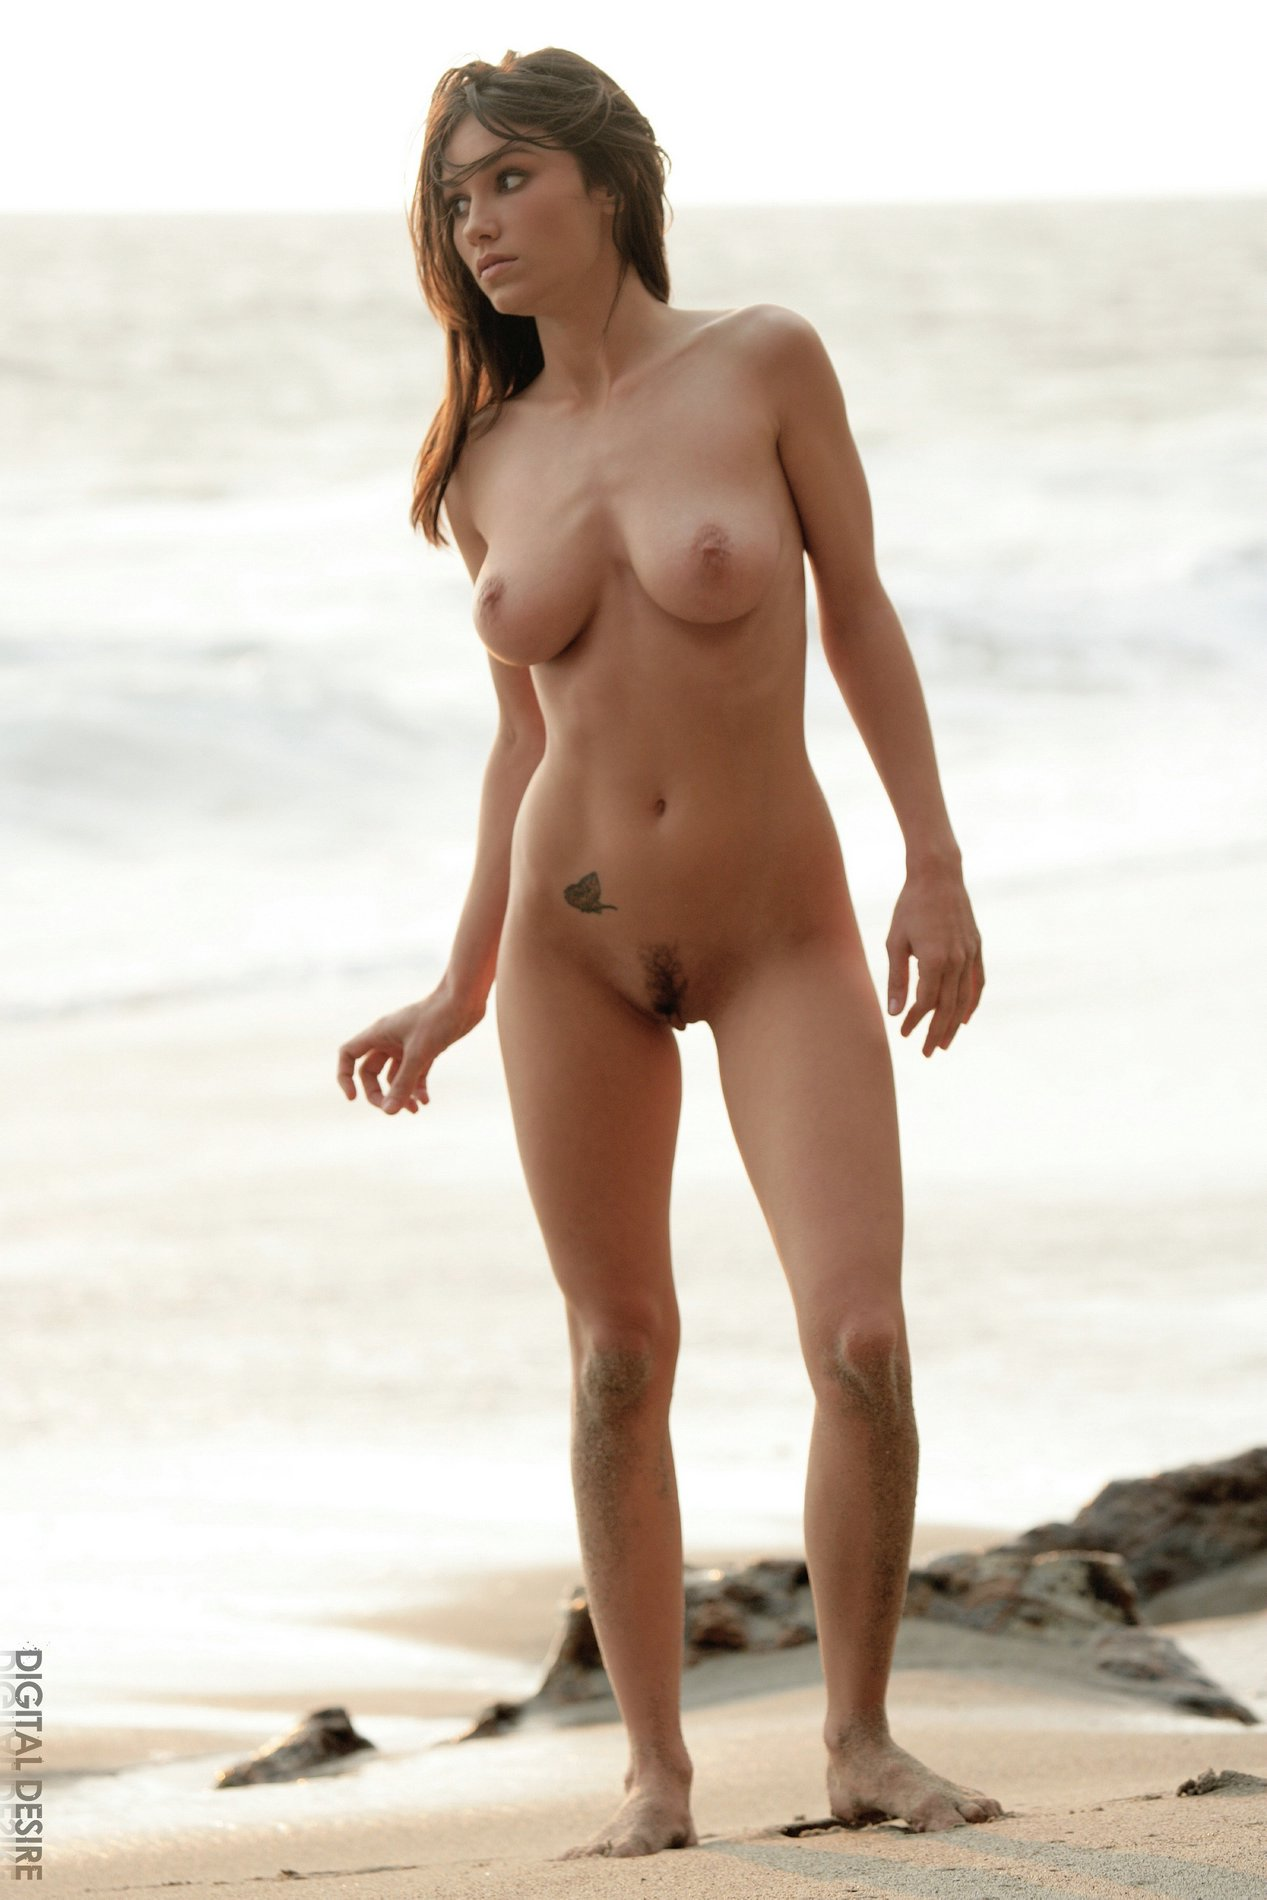 Sofia Webber Exhibits Her Body On The Beach - My Pornstar Book-6949